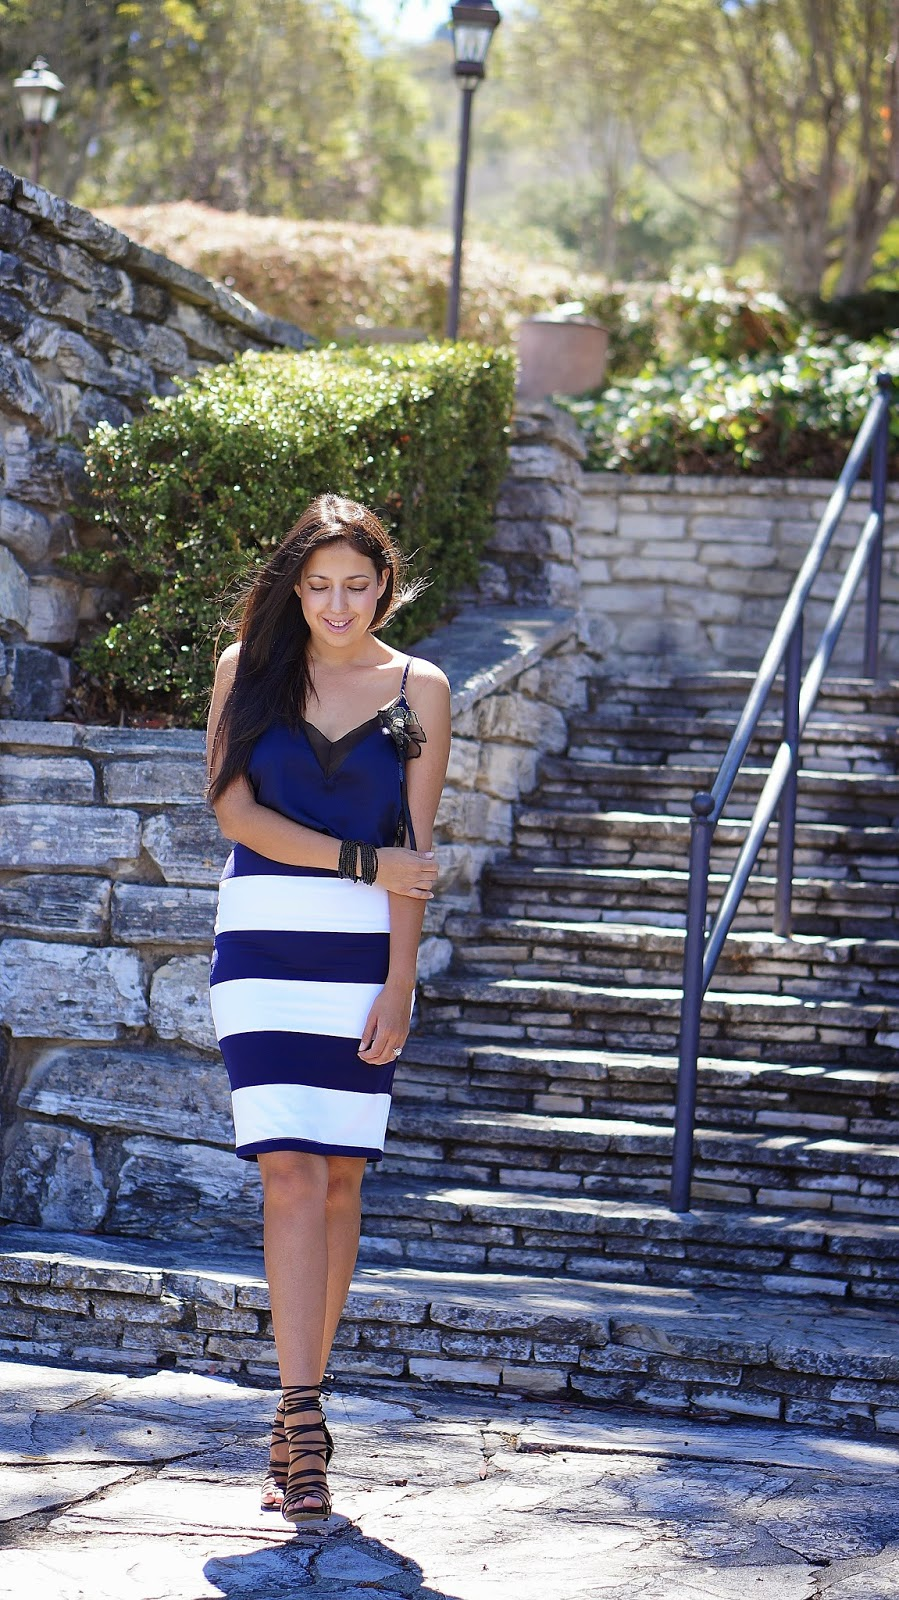 Shoemint Strappy heels, Navy and White Striped Pencil Skirt, Navy Blue Lace camisole